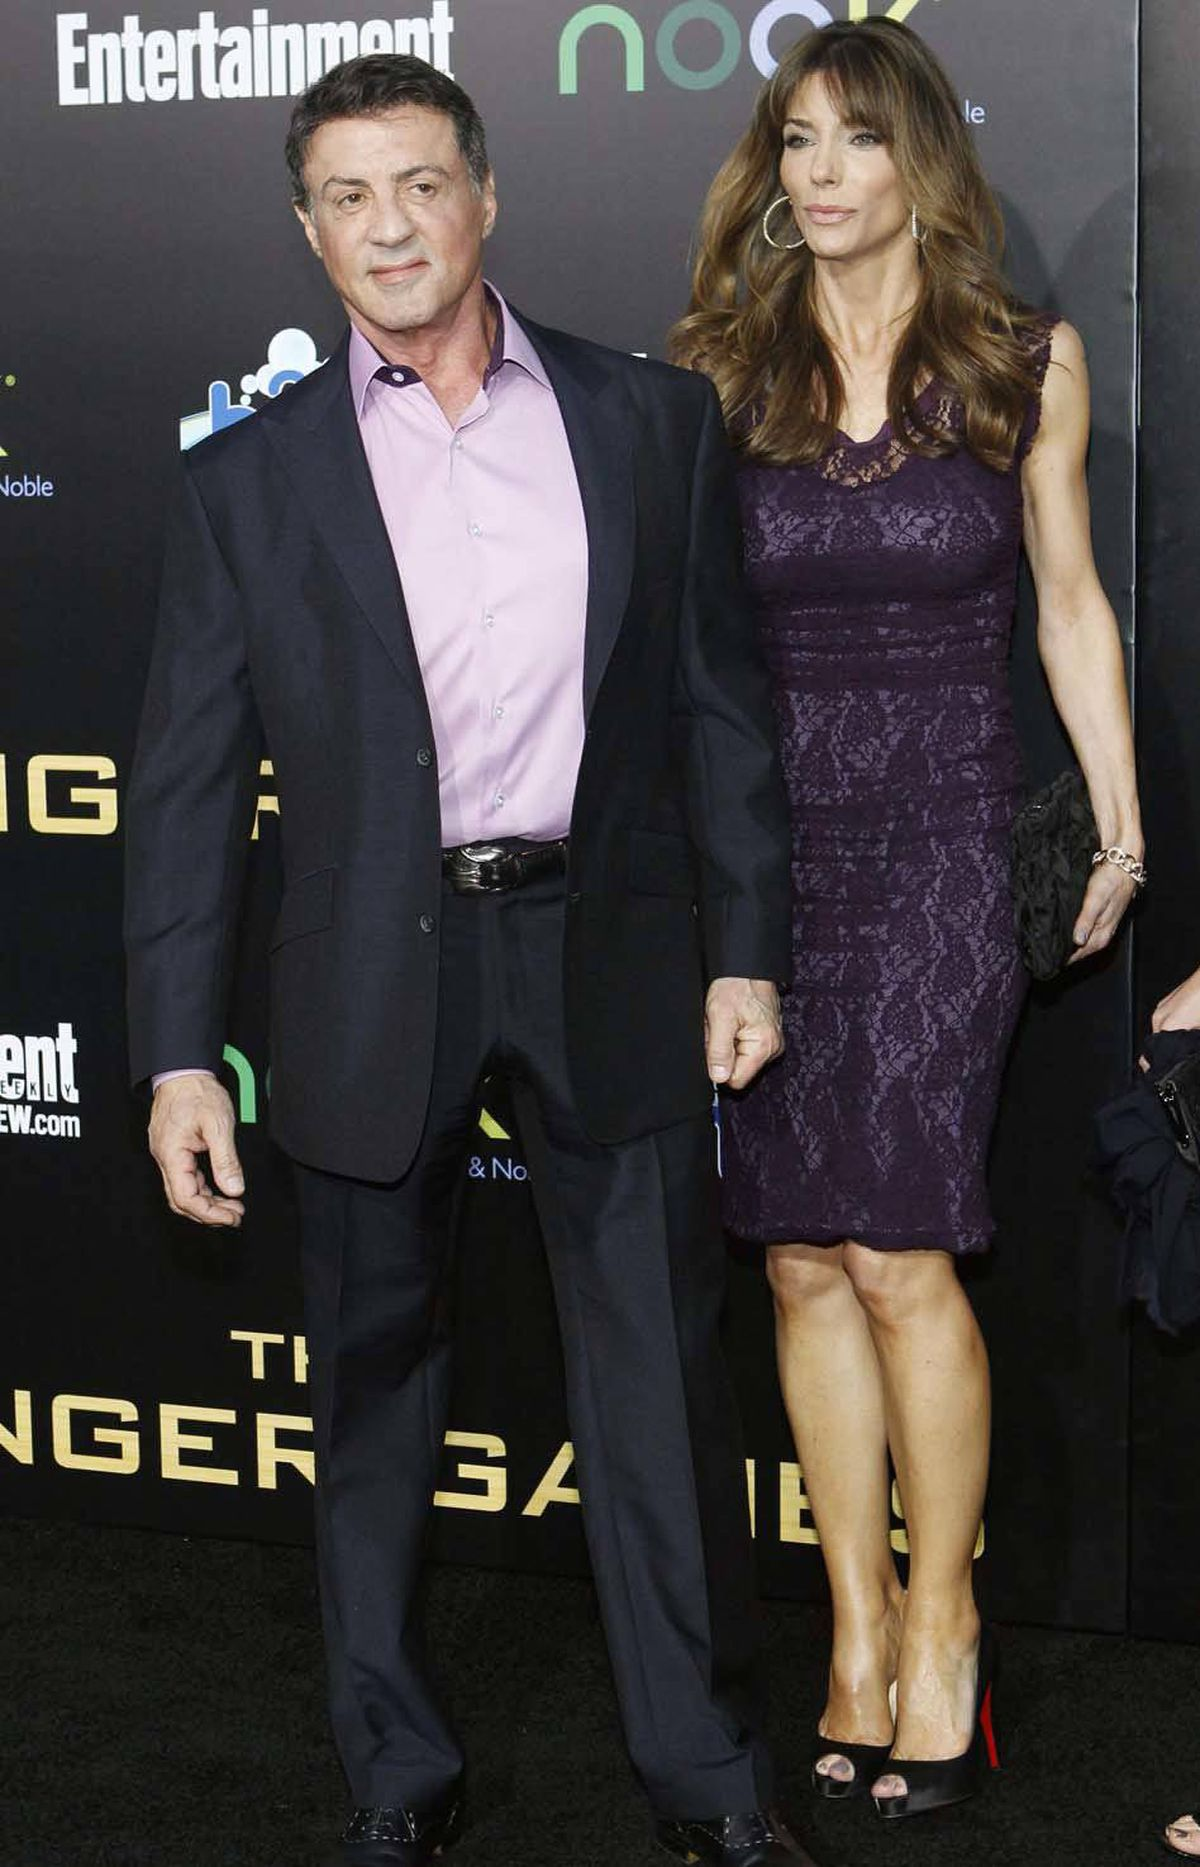 """Did someone say 'Rambo'?"" Sylvester Stallone, with his wife Jennifer Flavin, asks at the premiere of ""The Hunger Games"" in Los Angeles last week."